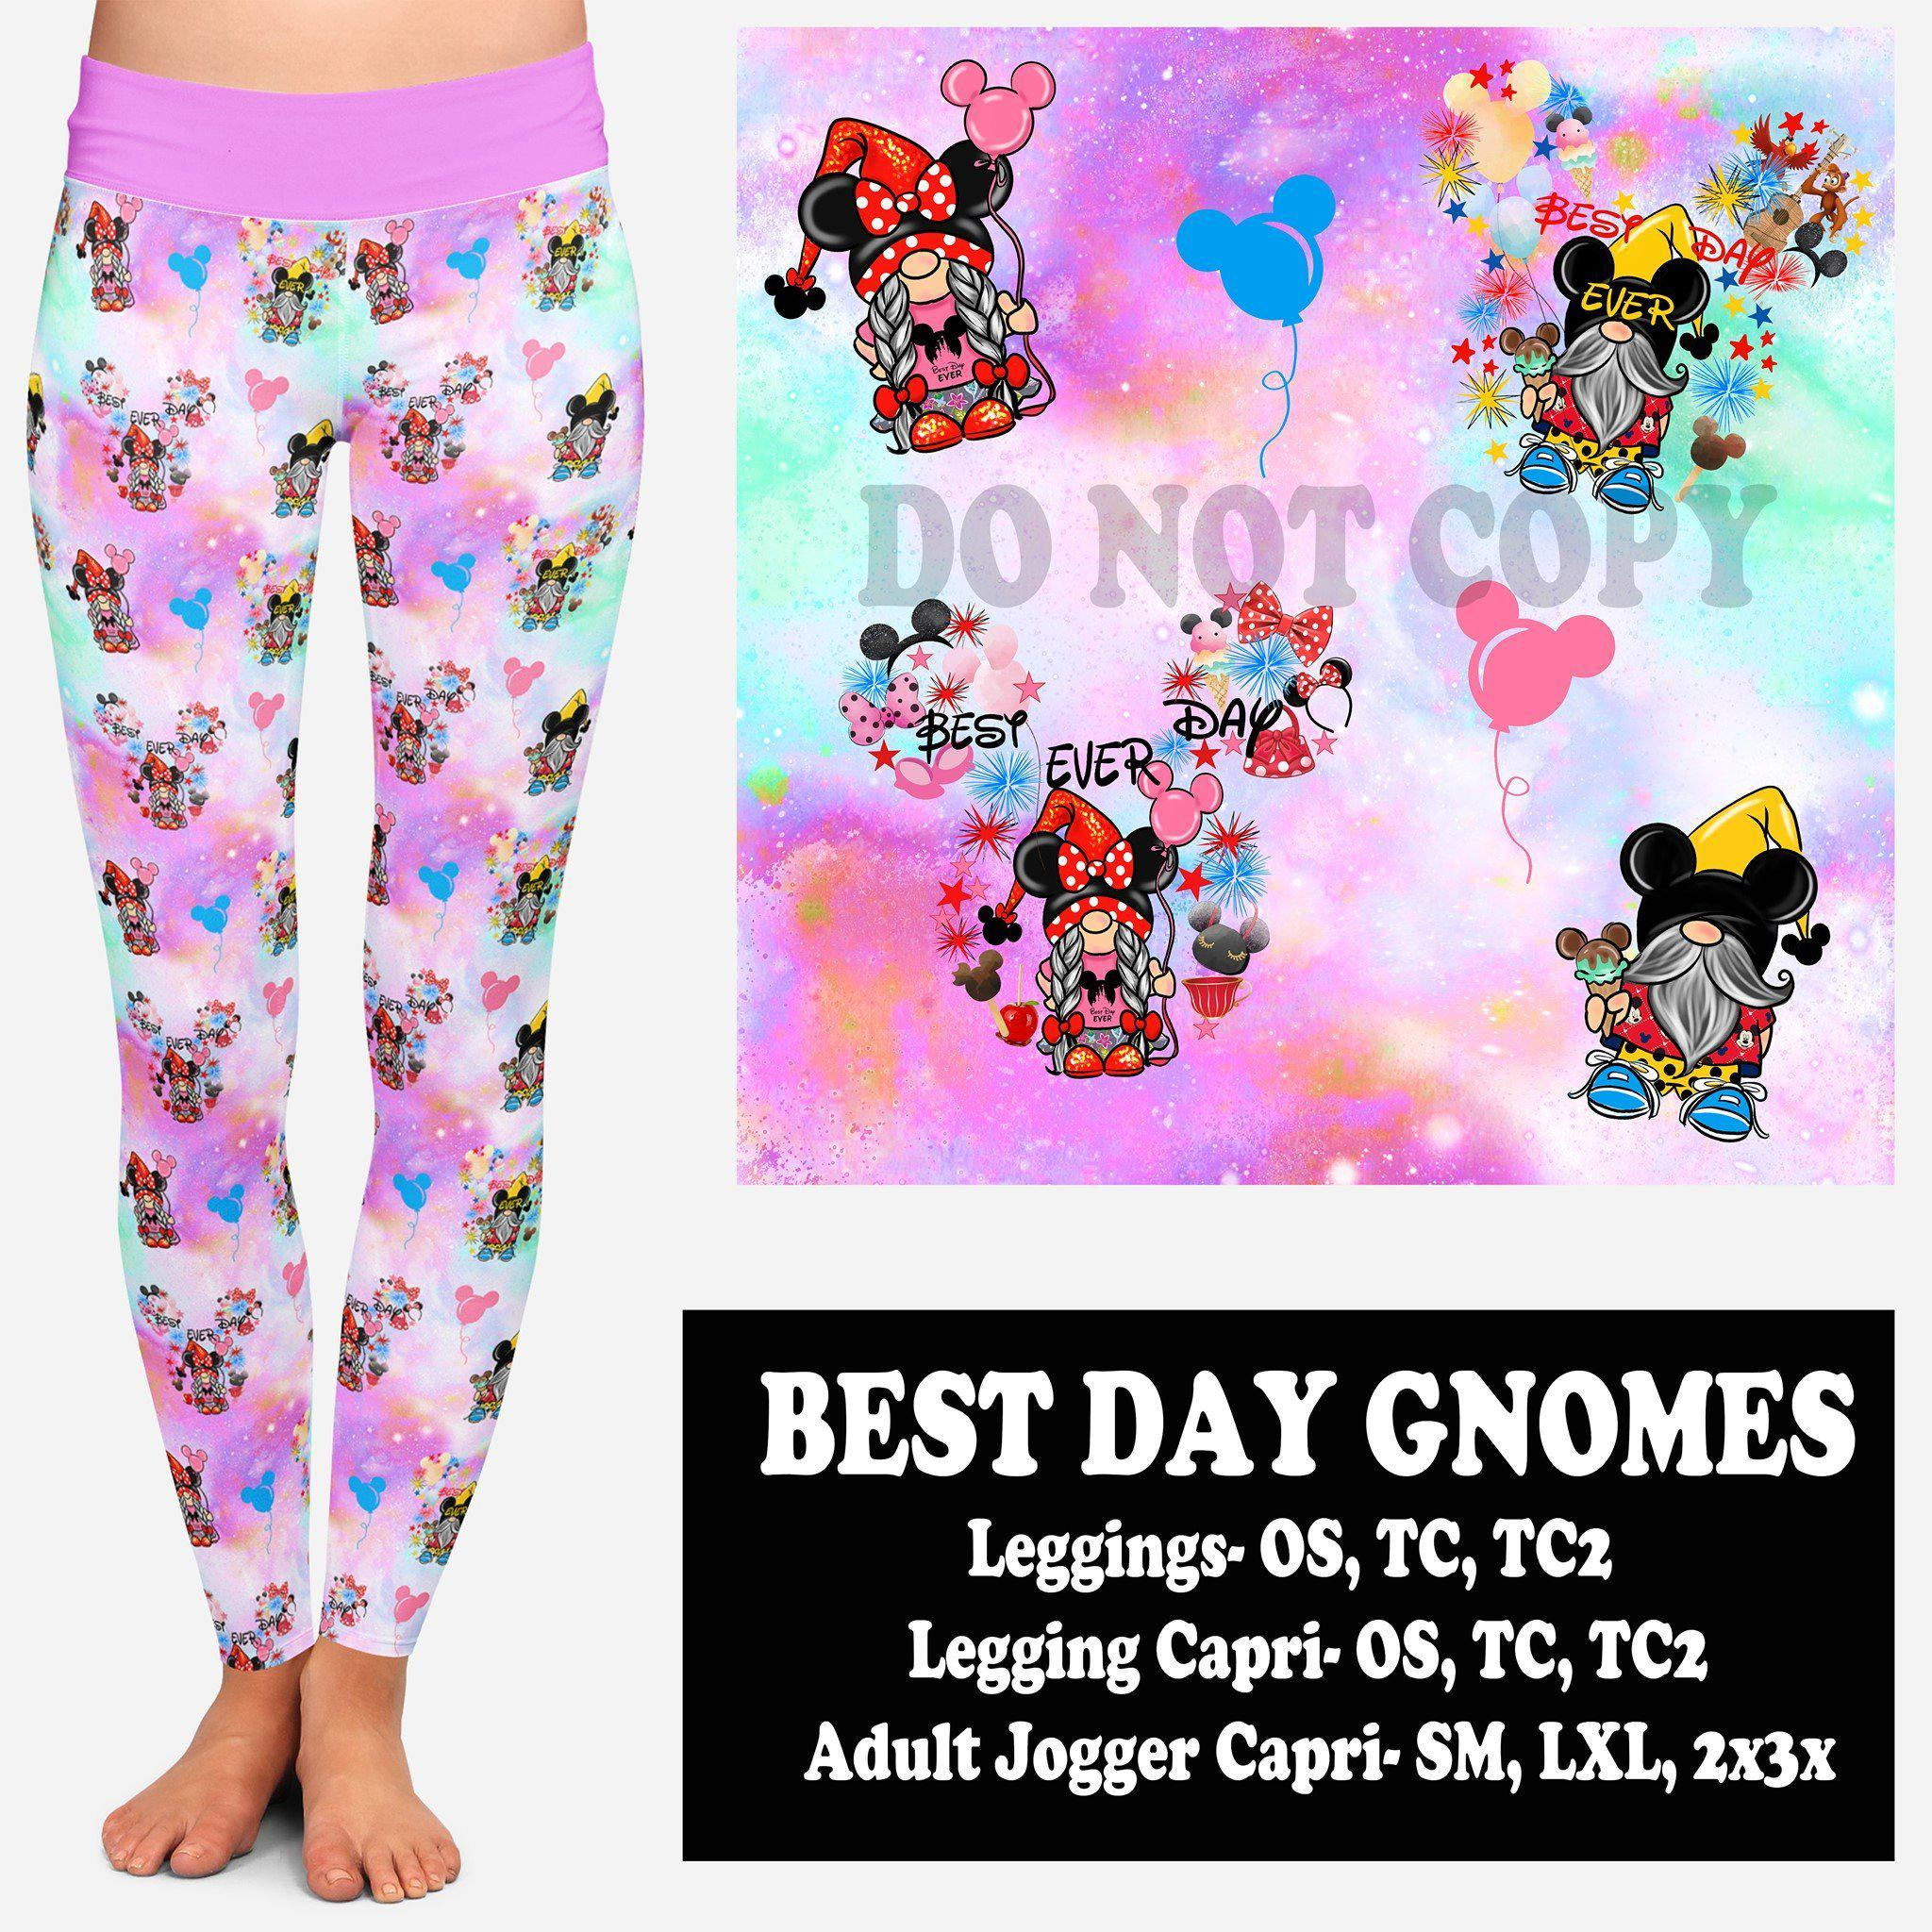 BEST DAY GNOMES (LEGGINGS, CAPRI, JOGGER CAPRI)